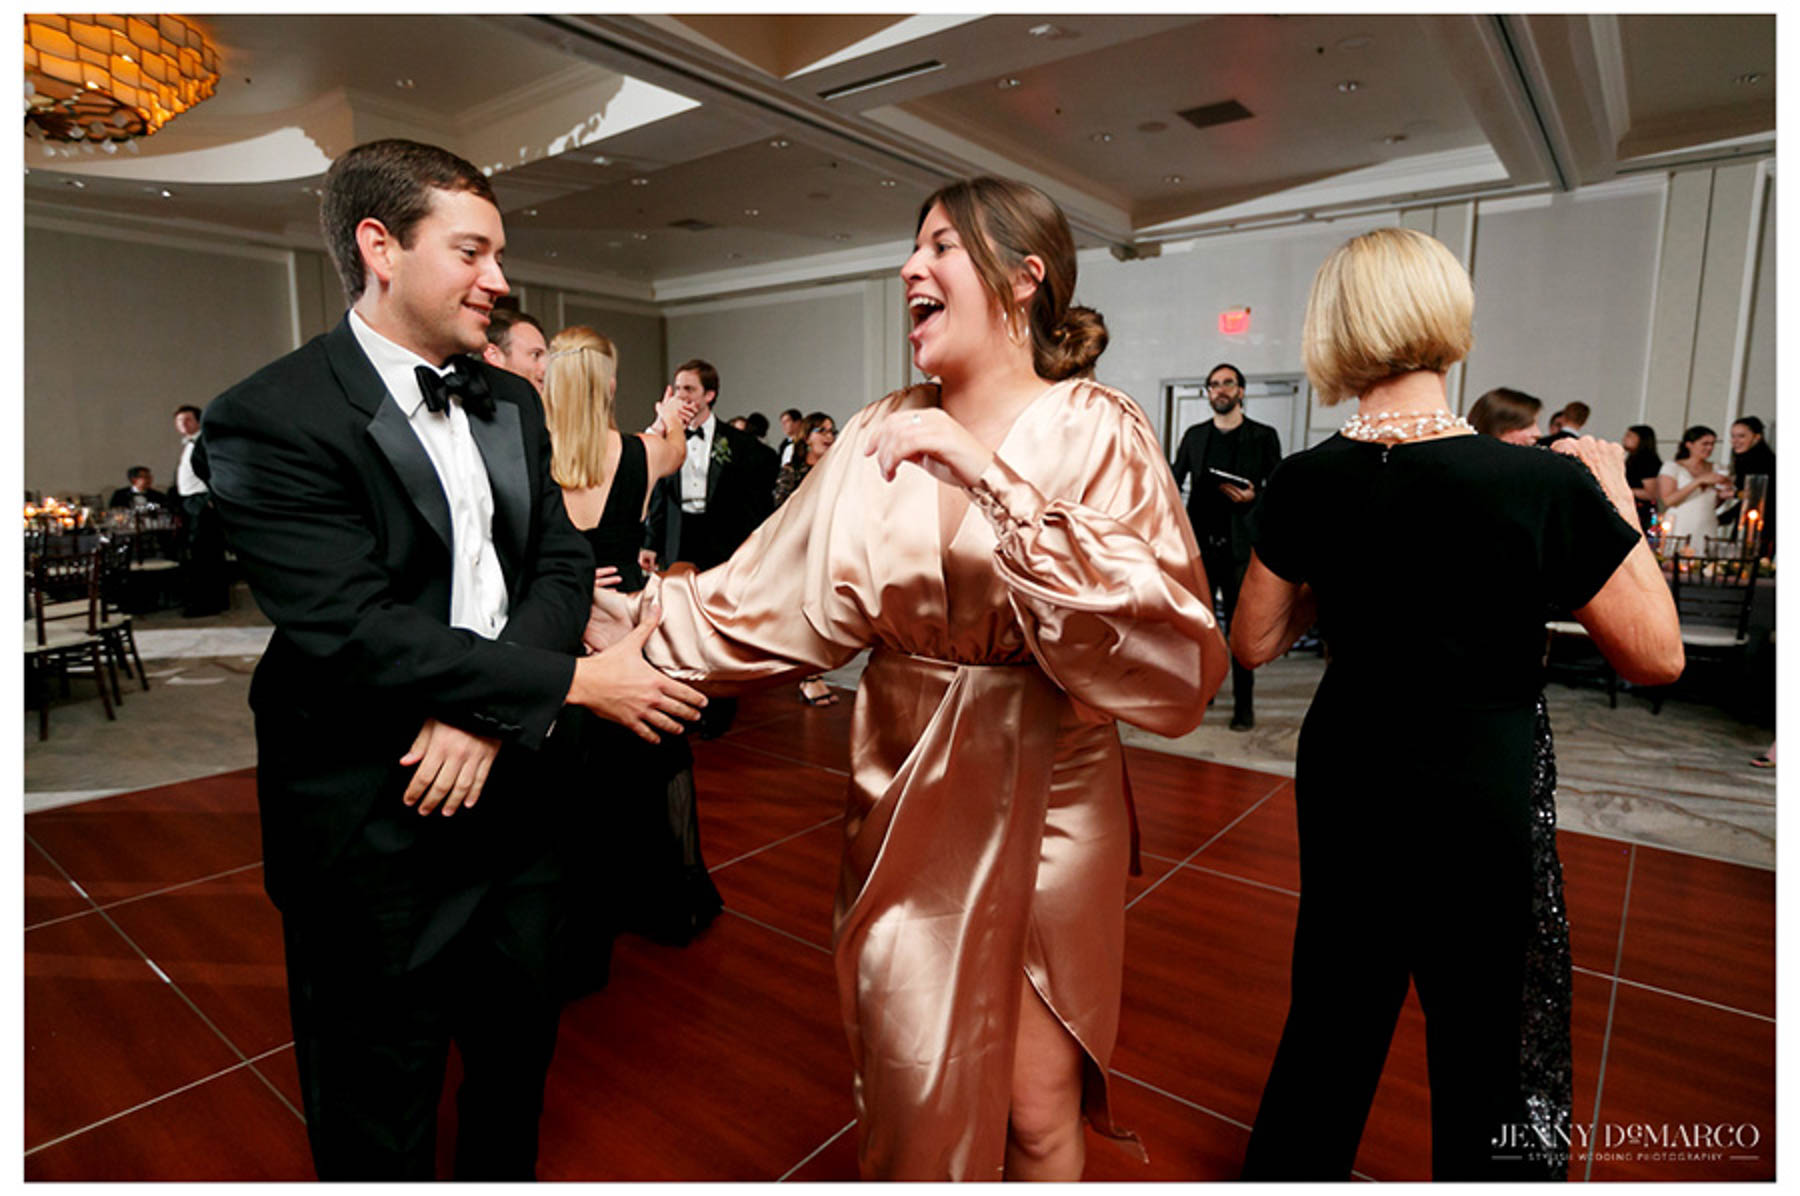 man and woman dance on the dance floor at the reception